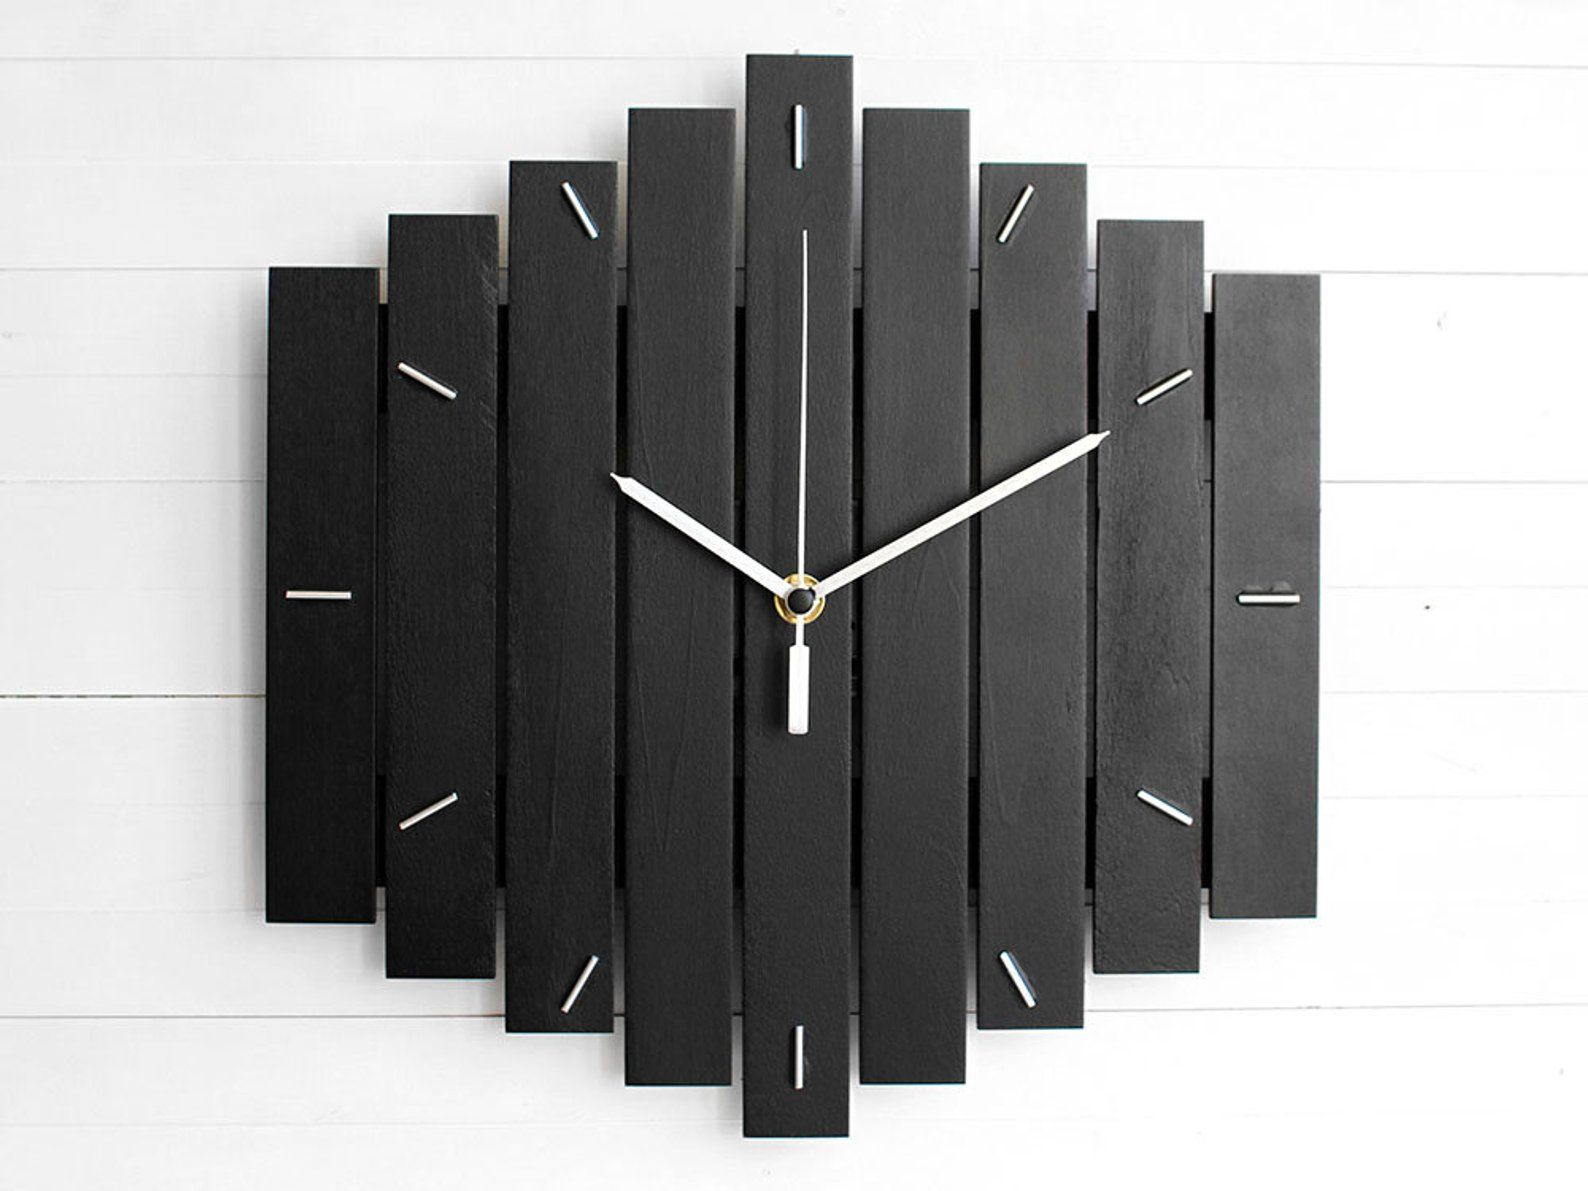 Component Wooden Wall Clock 12 The Romb Industrial Etsy Wall Clock Clock Wall Clock Wooden